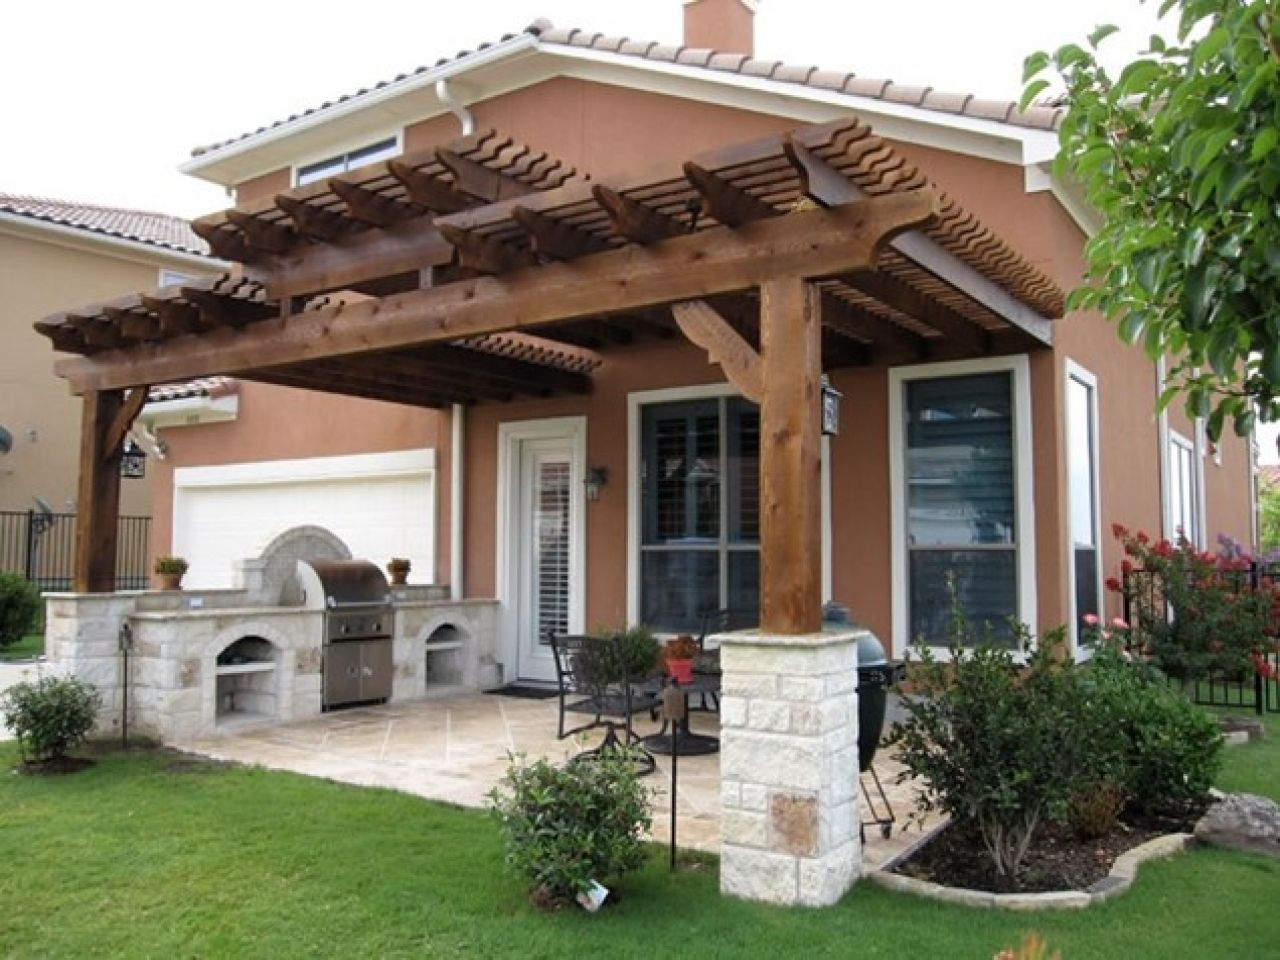 Patio awning design ideas riveting awnings patio covers for Patio cover ideas designs